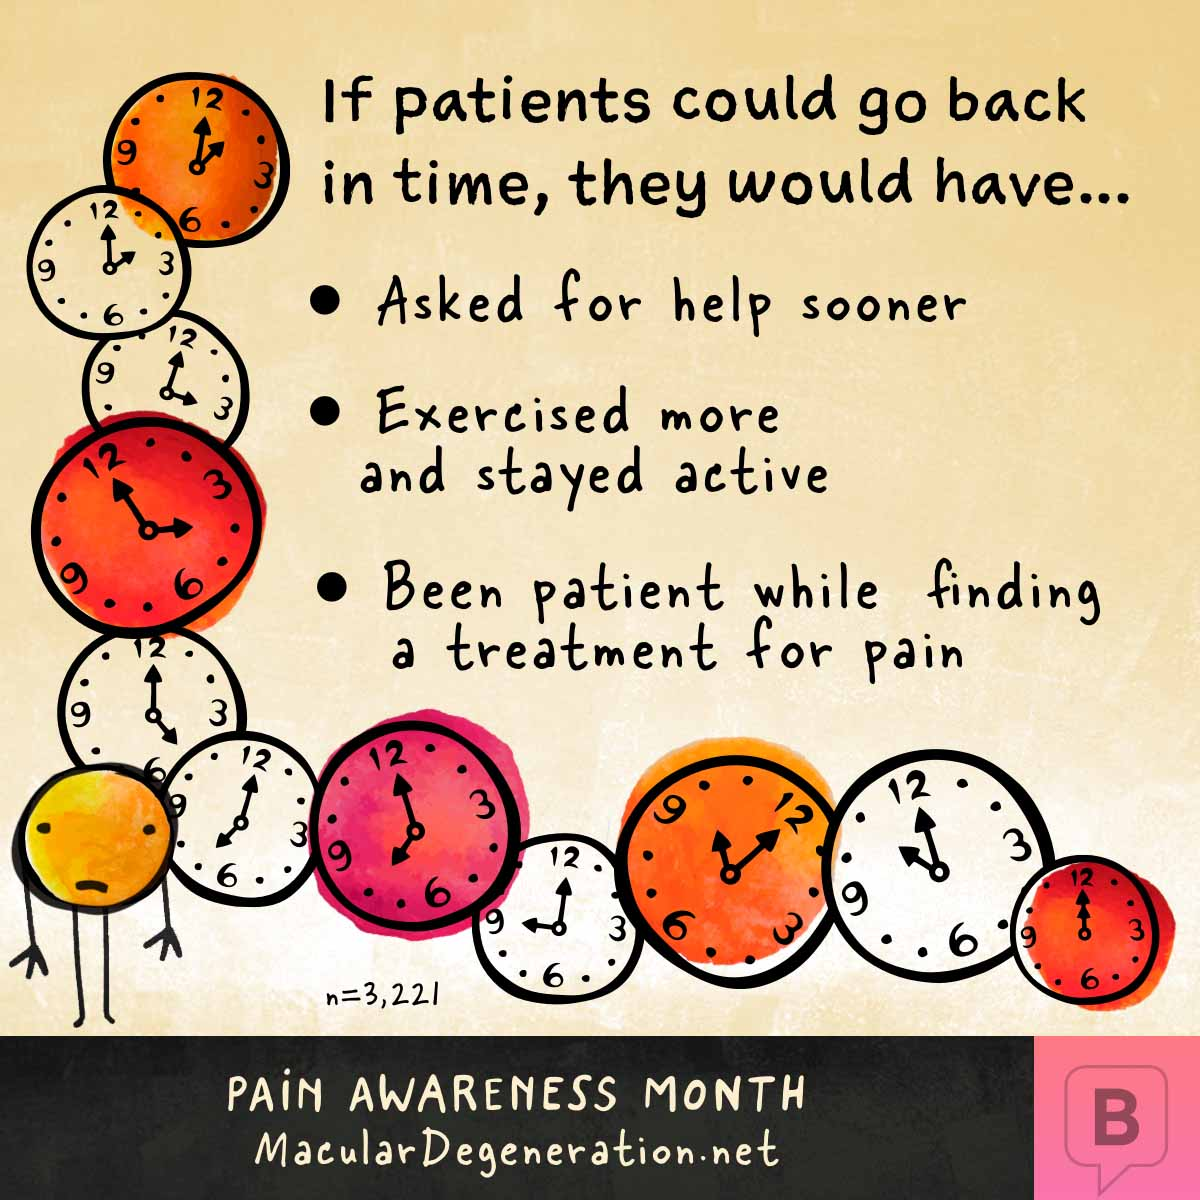 People with pain wish that they had asked for help, stayed active, and been patient with treatment